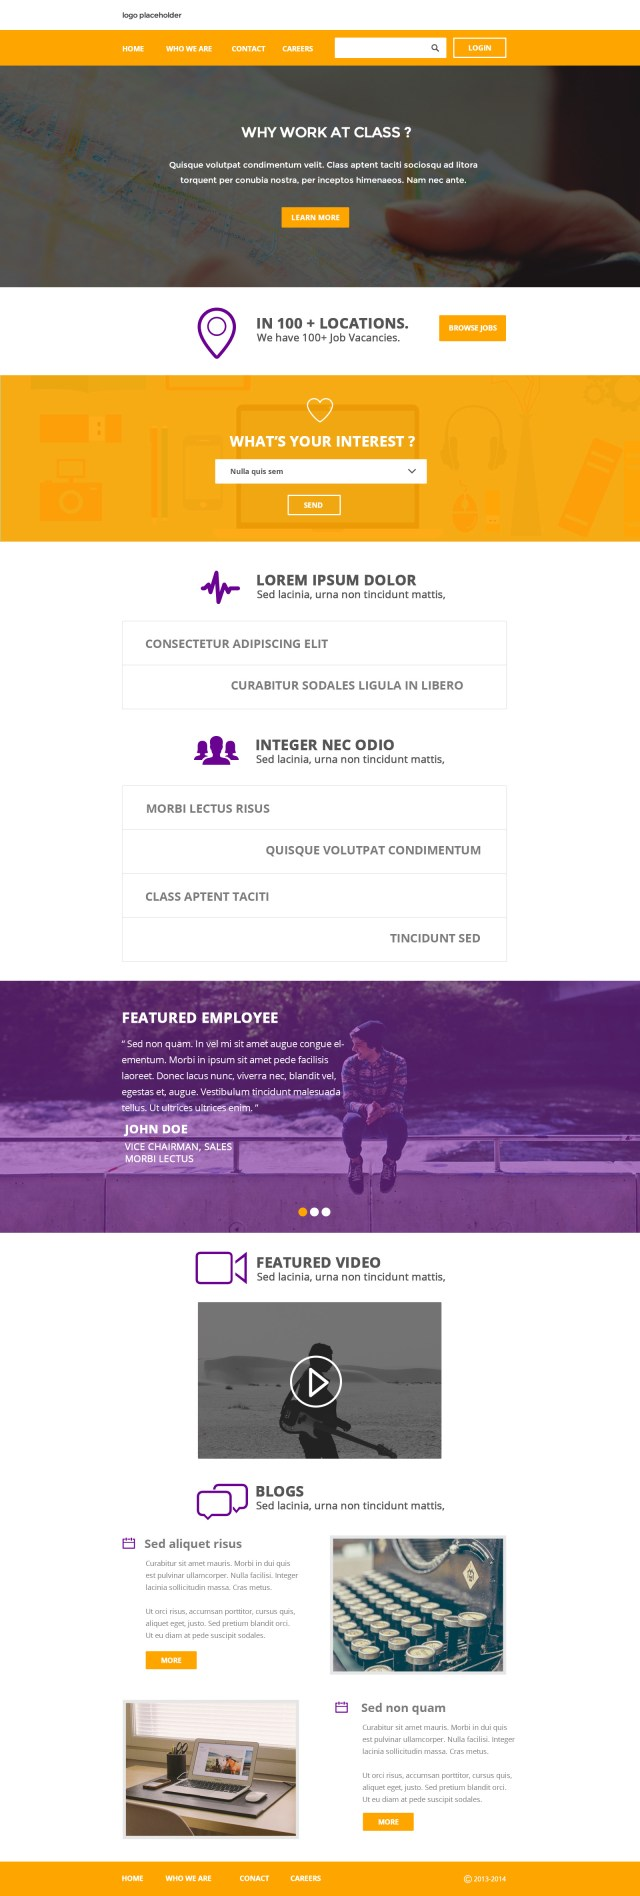 Flat Clean Corporate Layout Web Template PSD